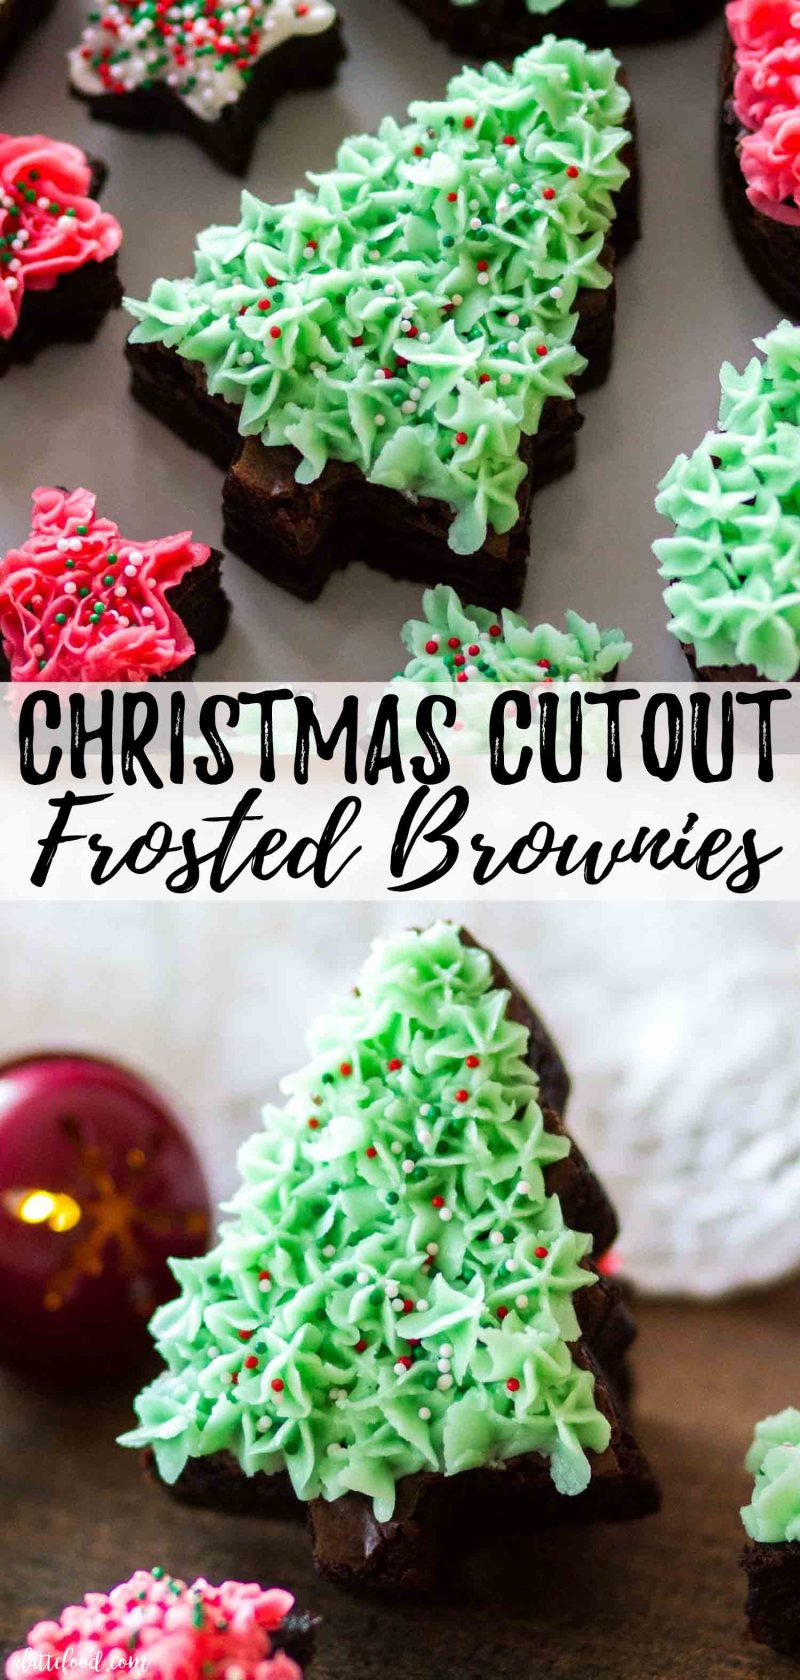 Homemade Cutout Frosted Fudge Brownies are too cute and super easy to make as a last minute Christmas dessert!